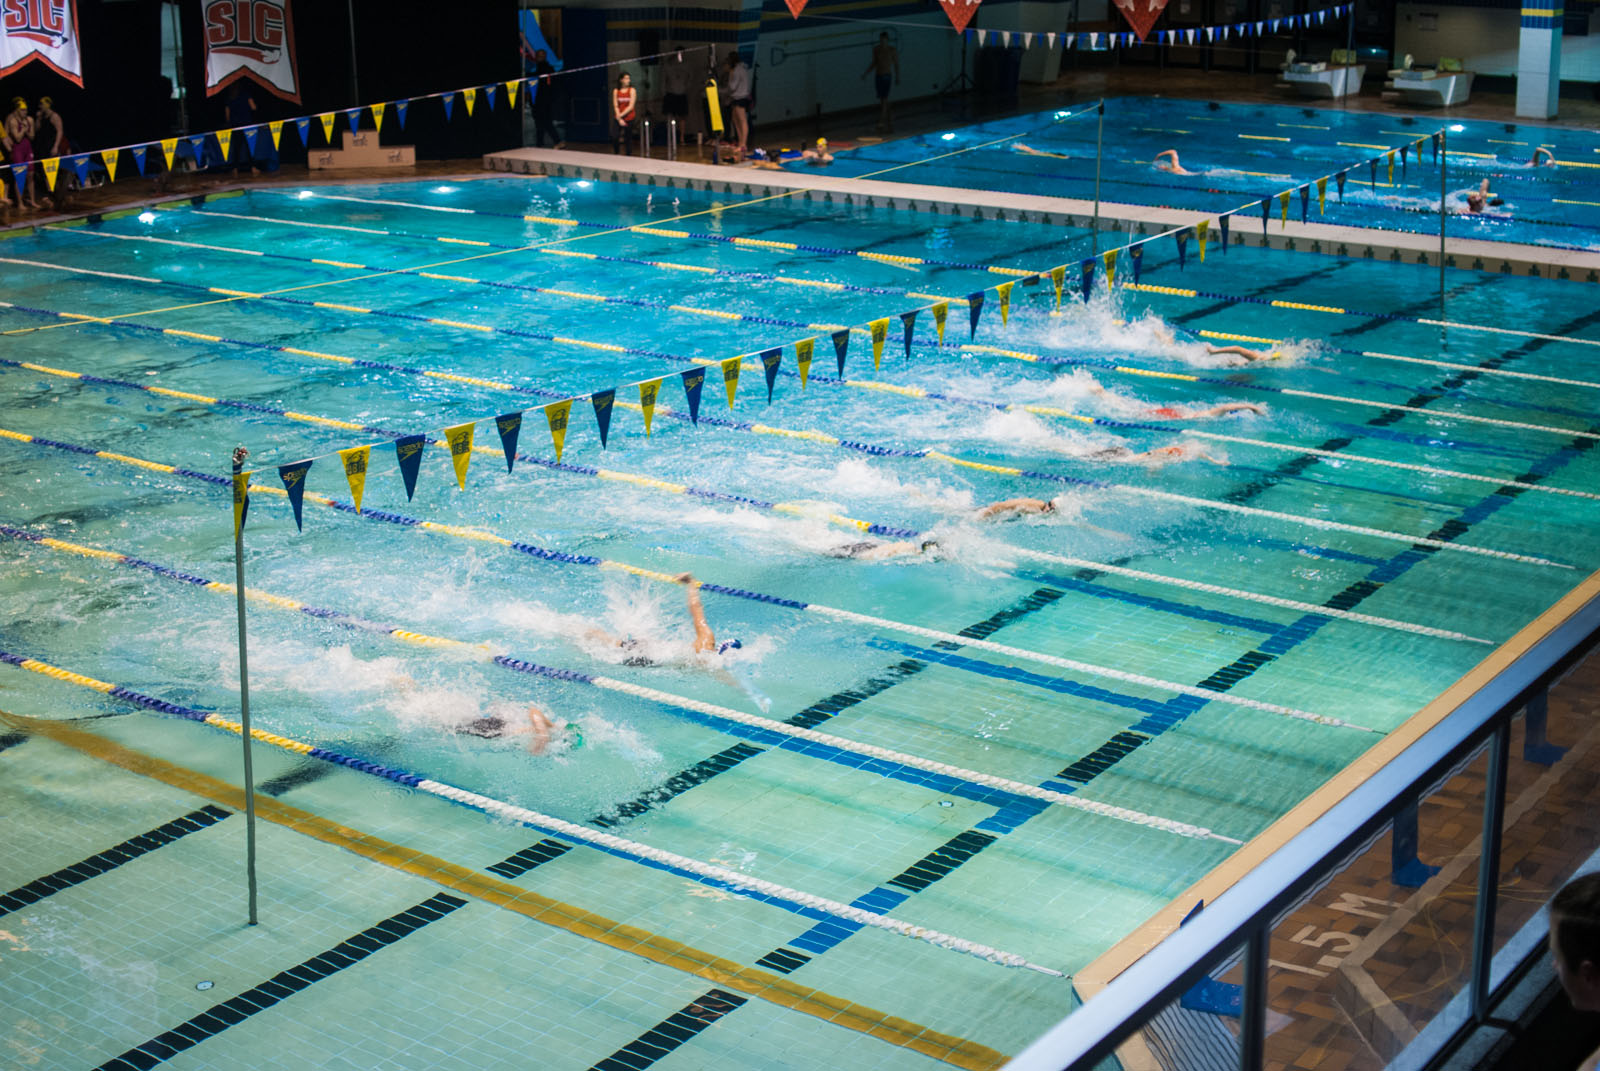 Both the men's and women's teams placed first at the Canada West championship meet.